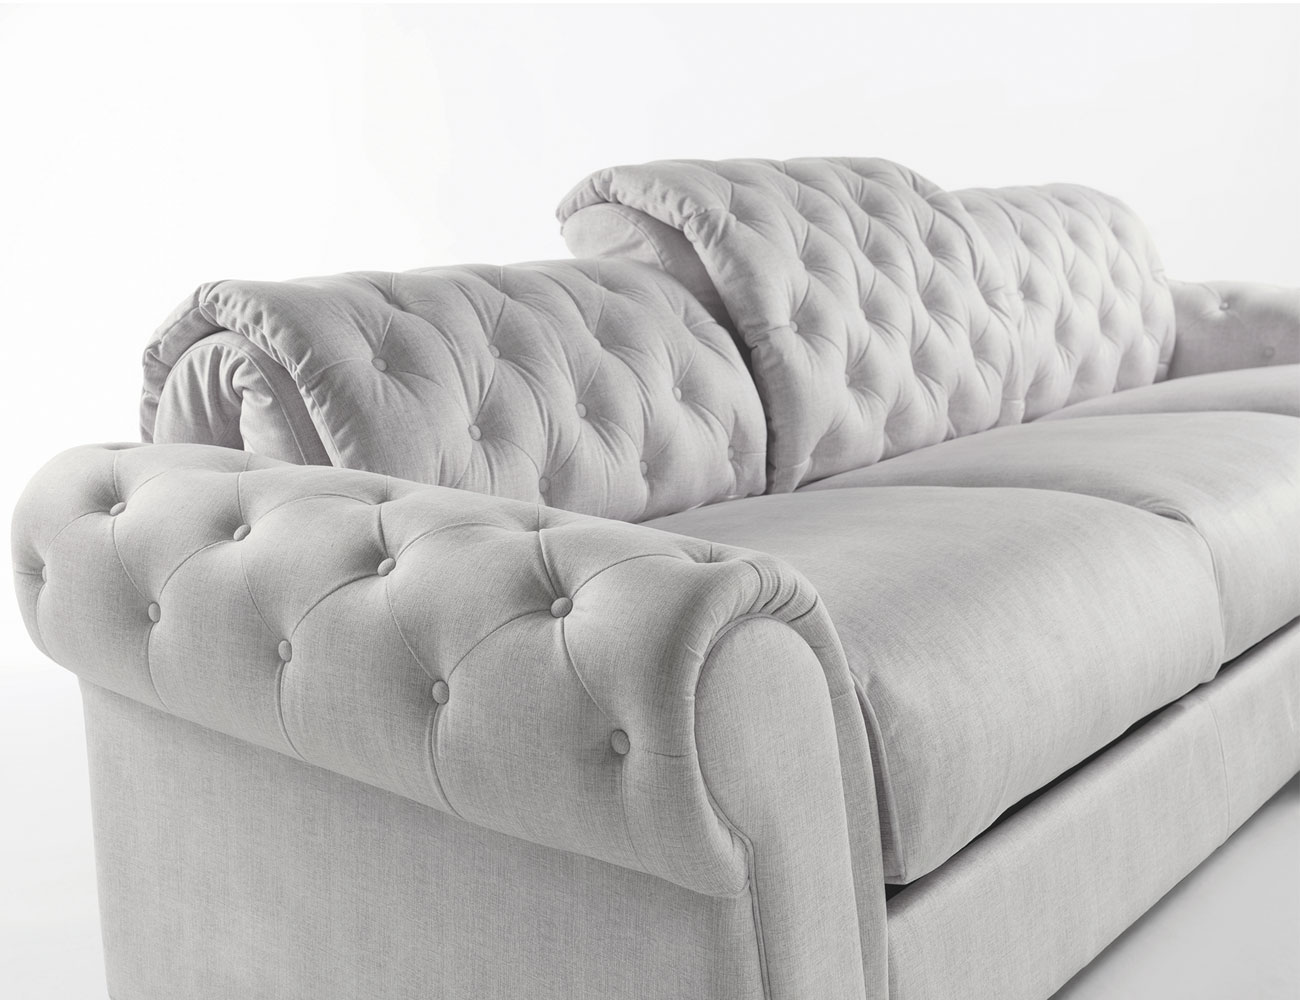 Sofa chaiselongue gran lujo decorativo capitone blanco tela 12